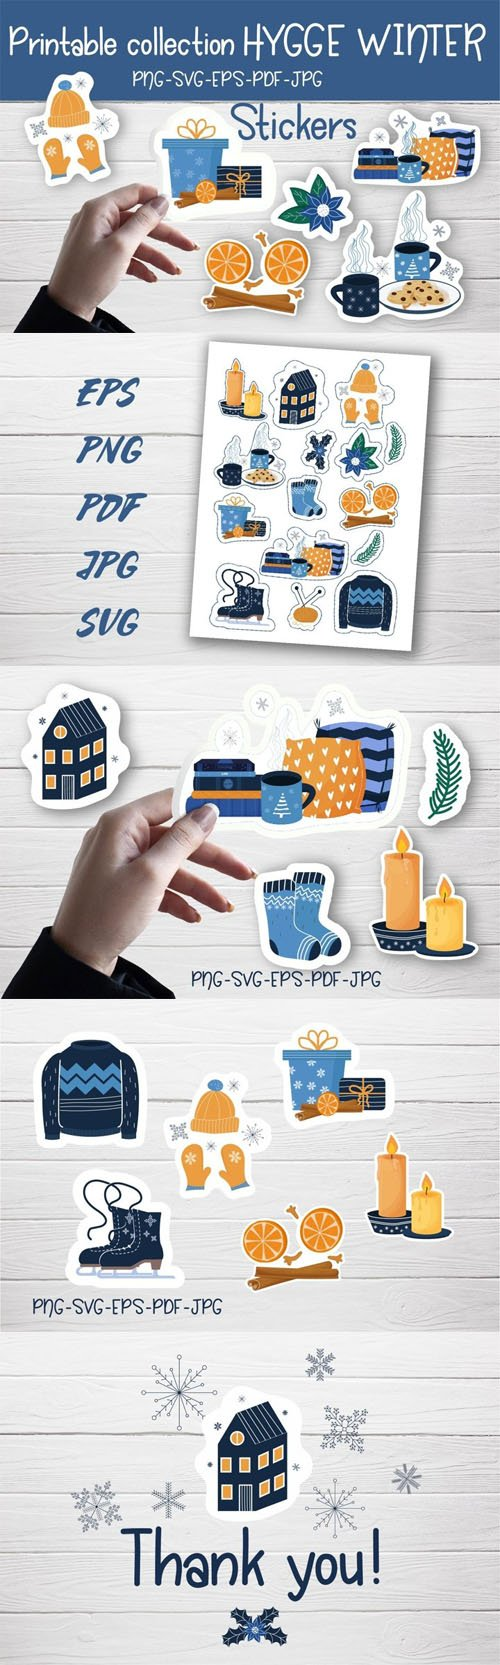 Printable Hygge Winter Vector Sticker Collection